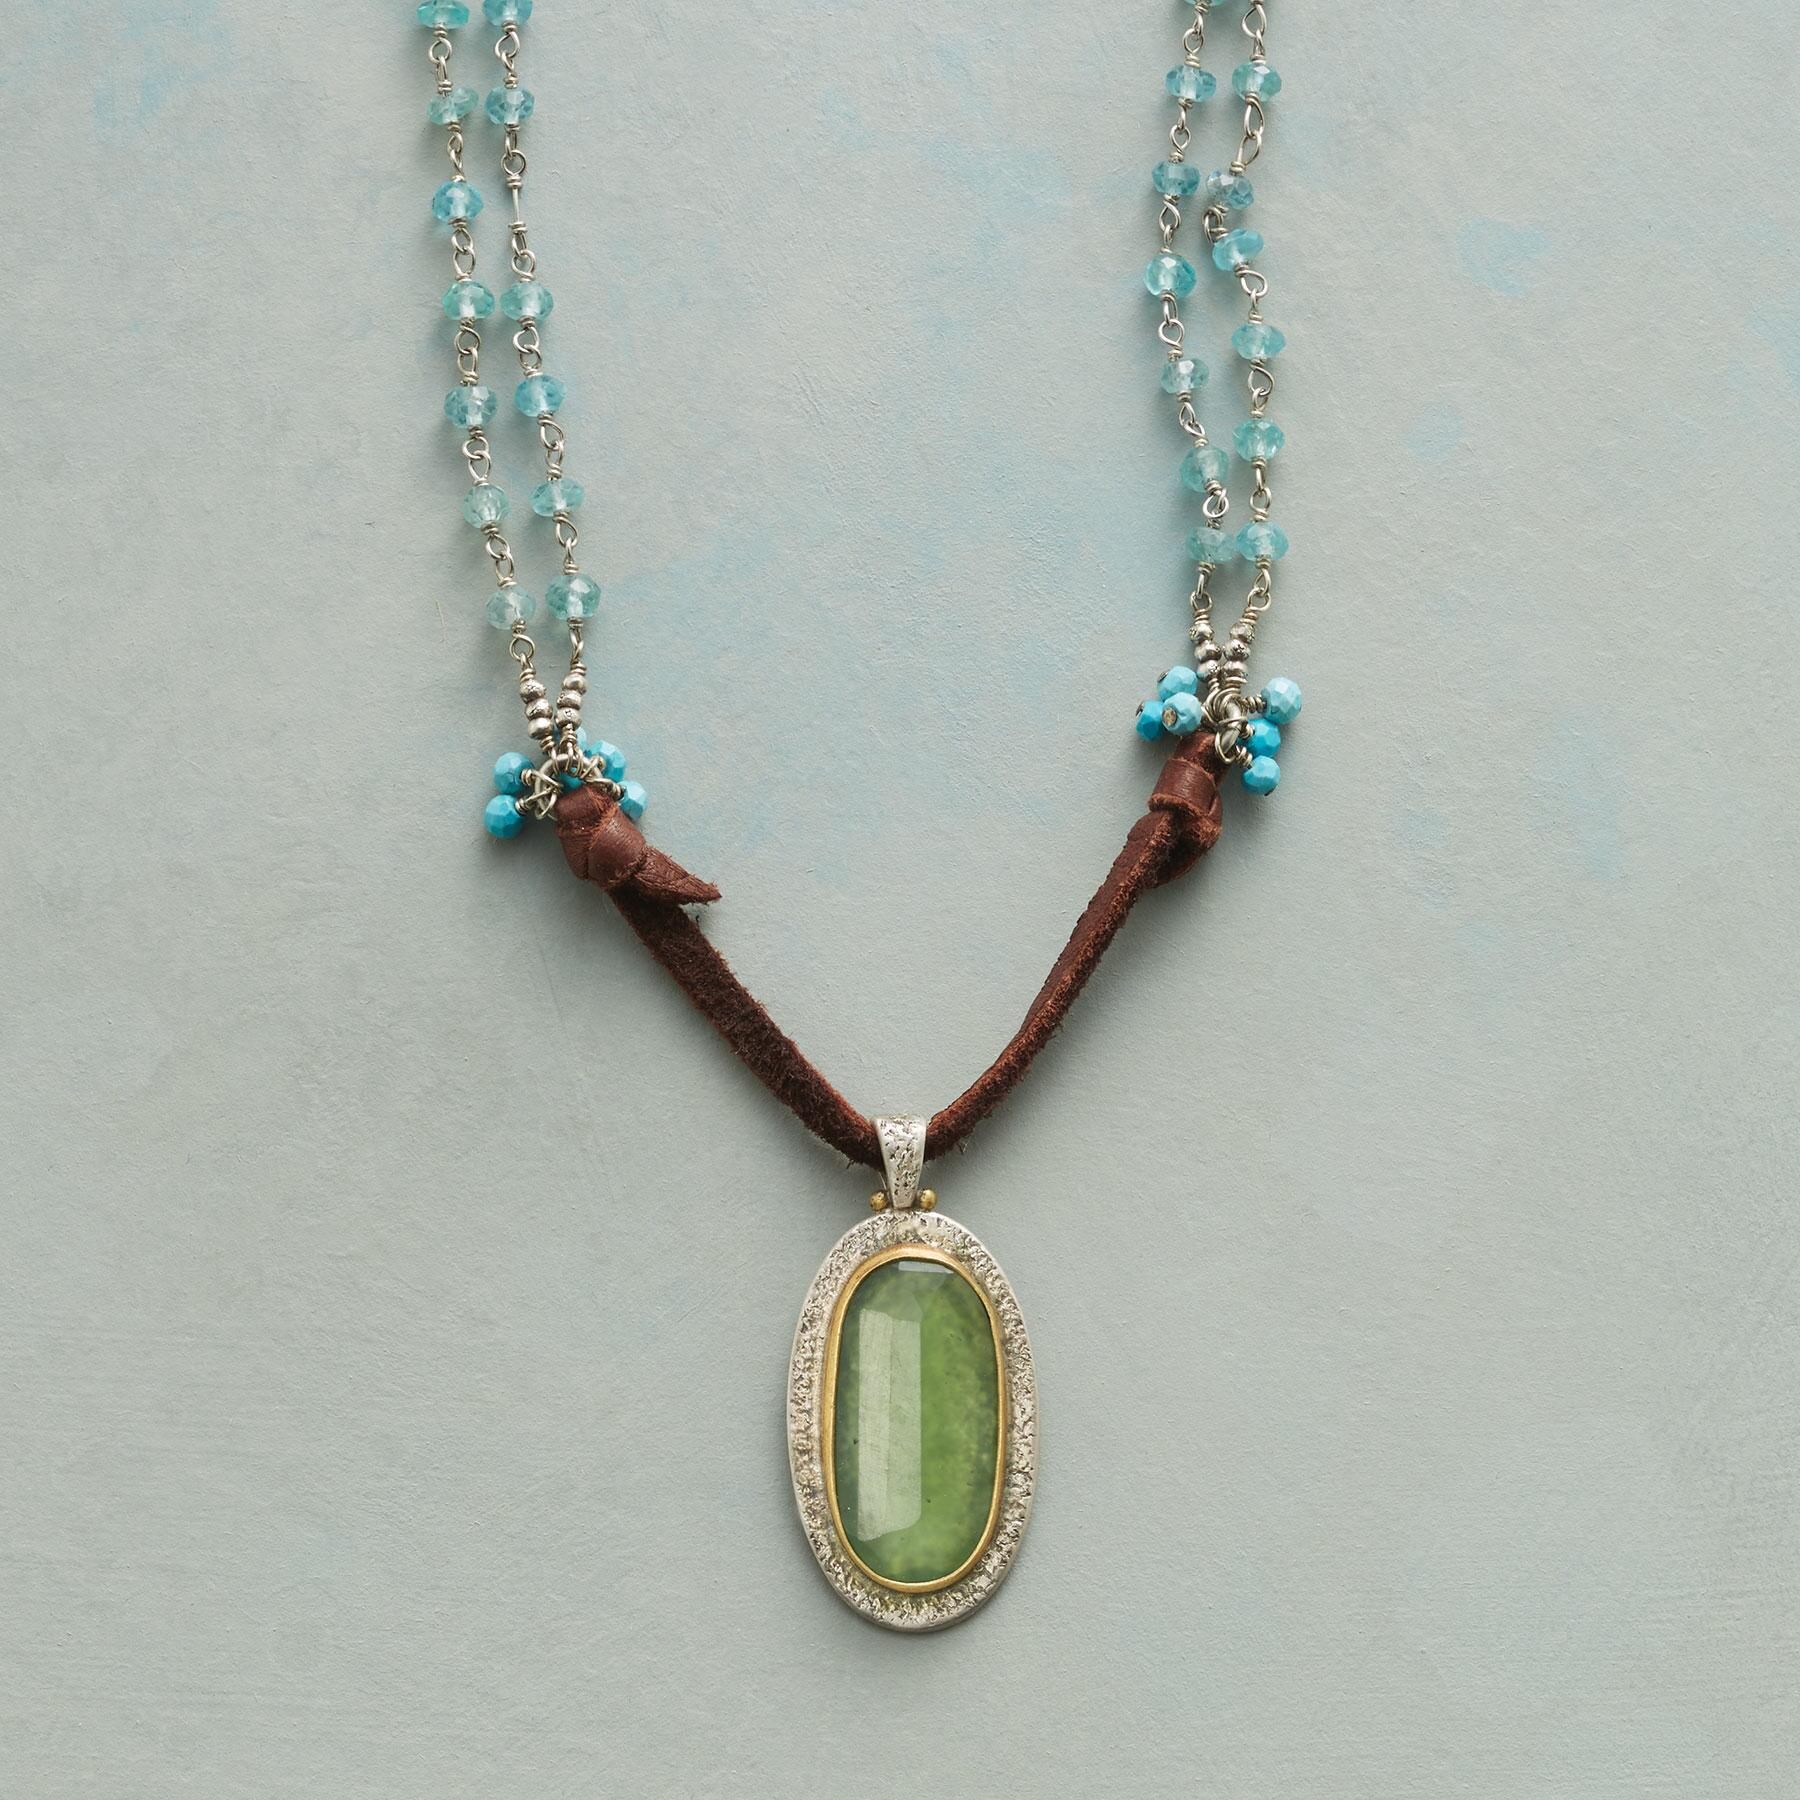 ANALOGY NECKLACE: View 1